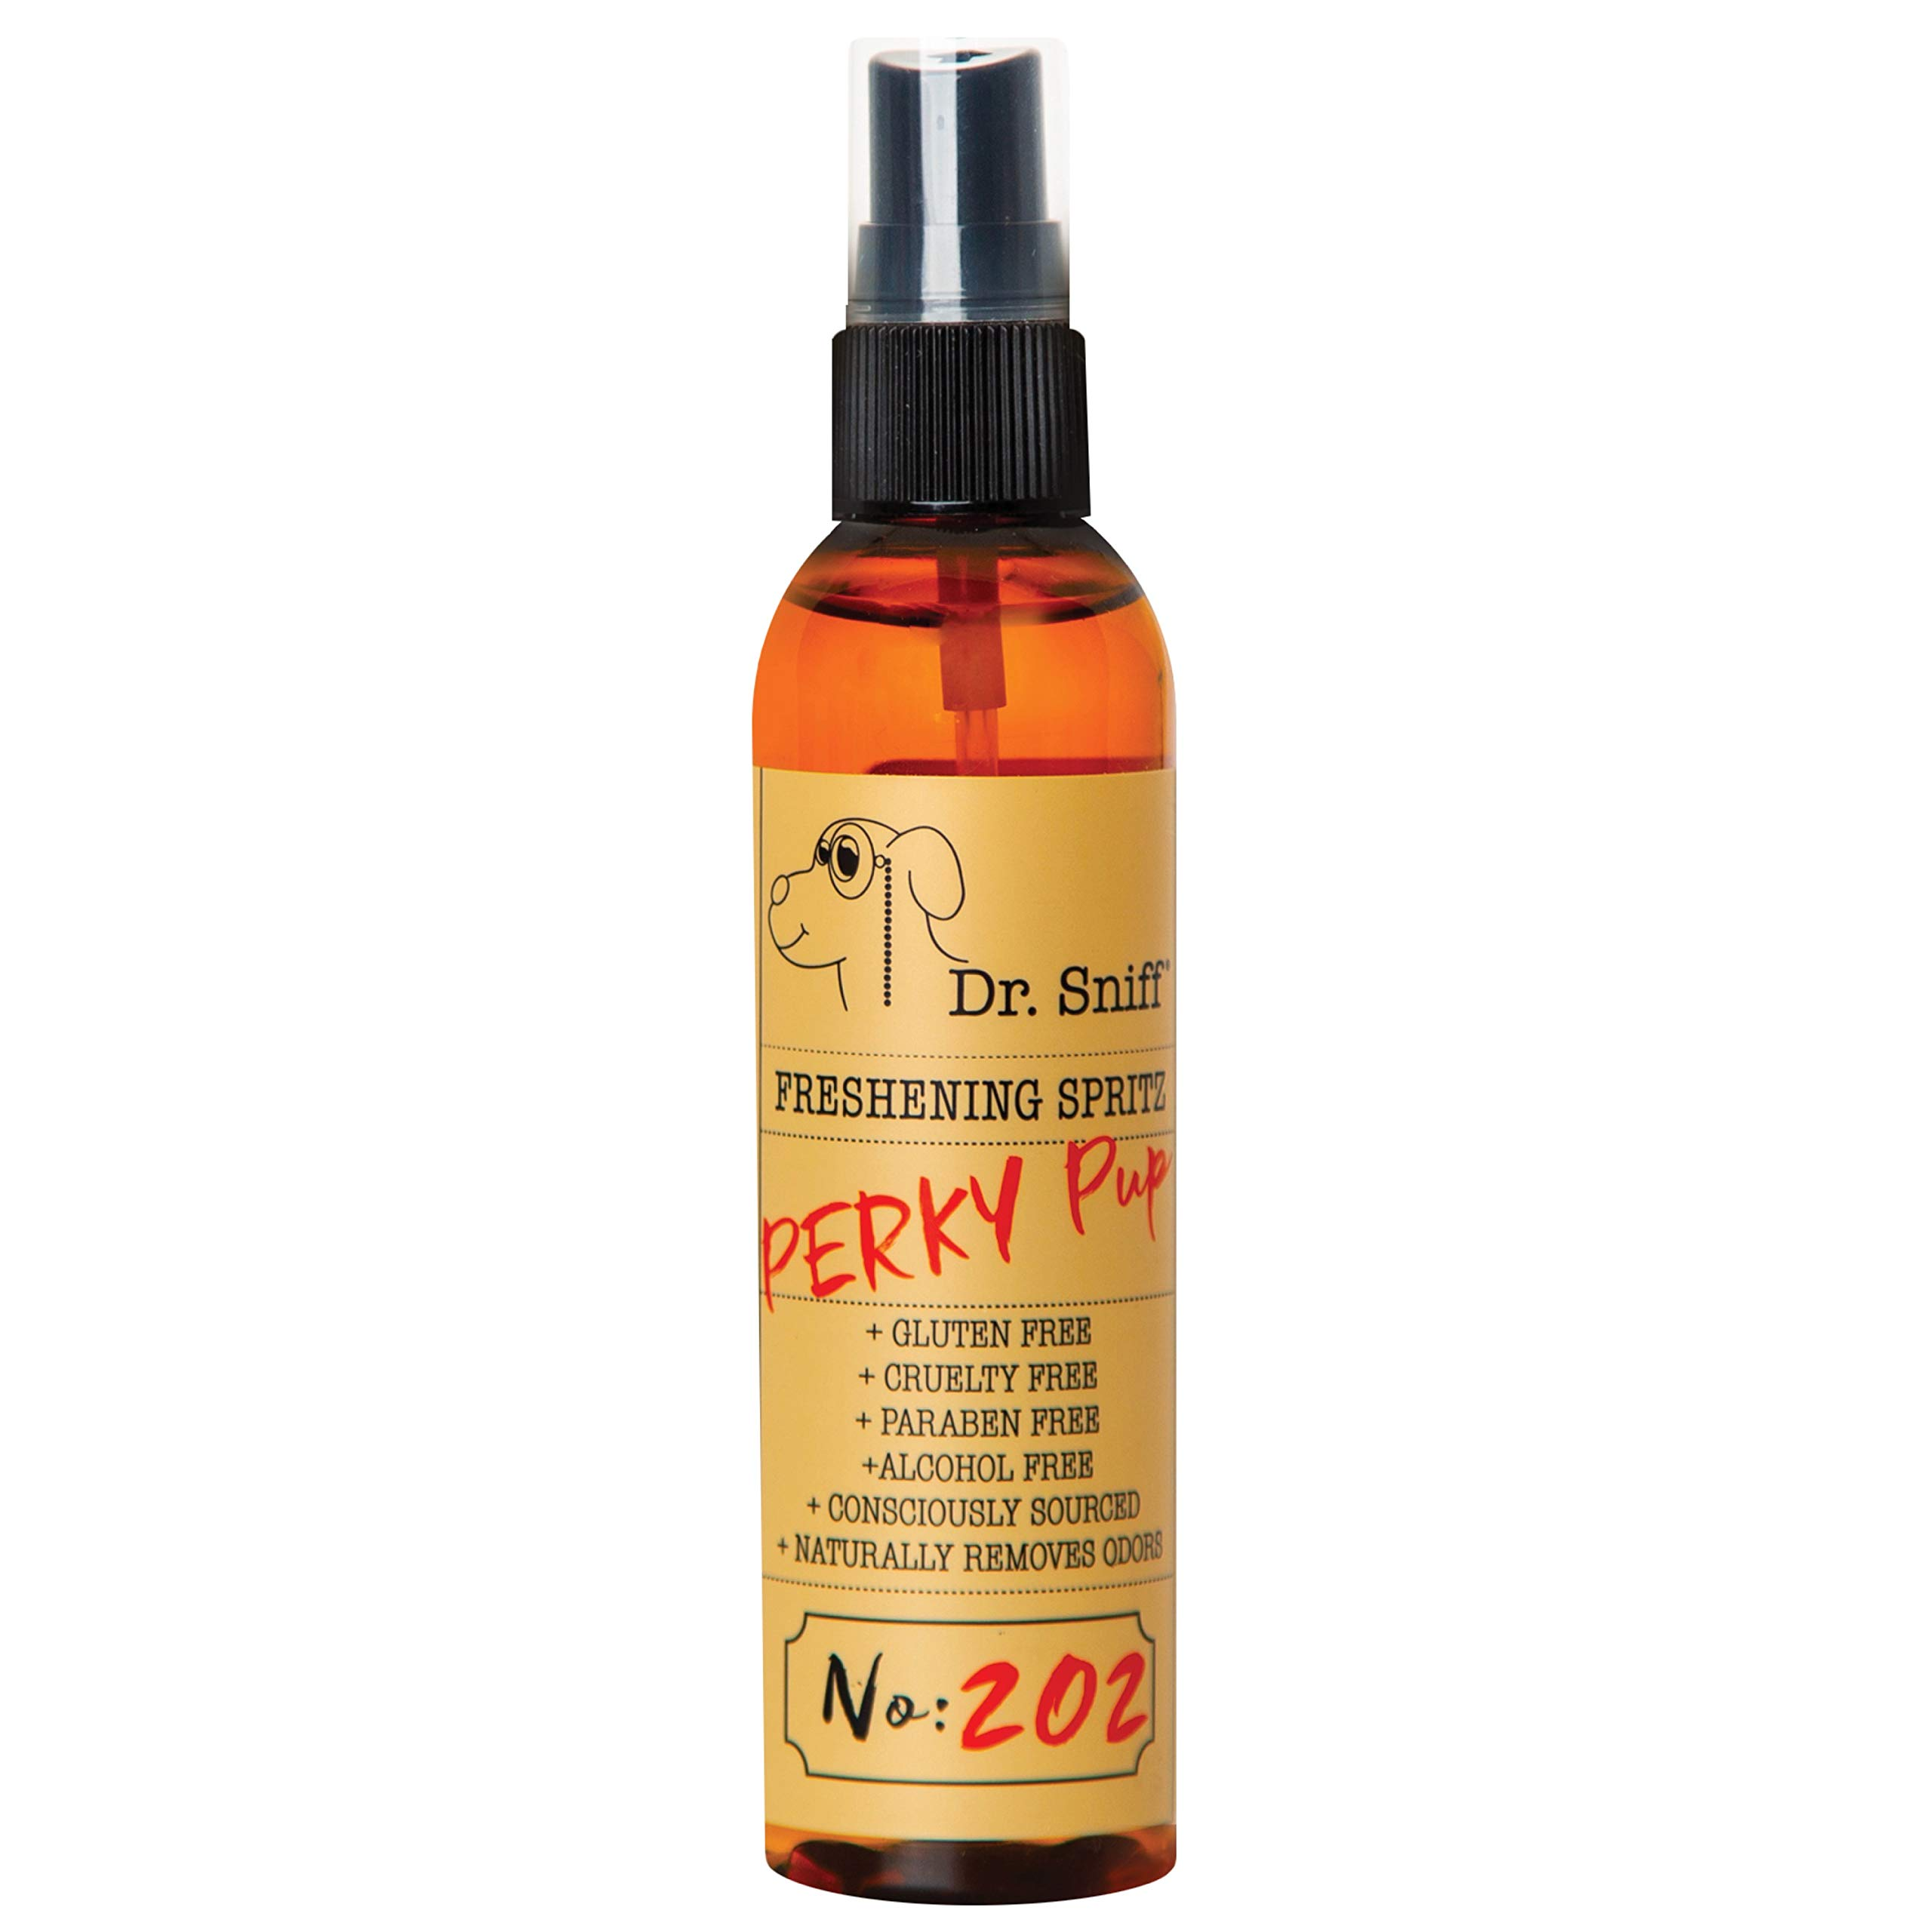 Dr. Sniff Freshening Dog Spritz Spray Small Batch & Made by Hand in The USA with Organic Ingredients | Alcohol-Free, Cruelty-Free, Paraben-Free, Sulfate-Free | 4 oz.